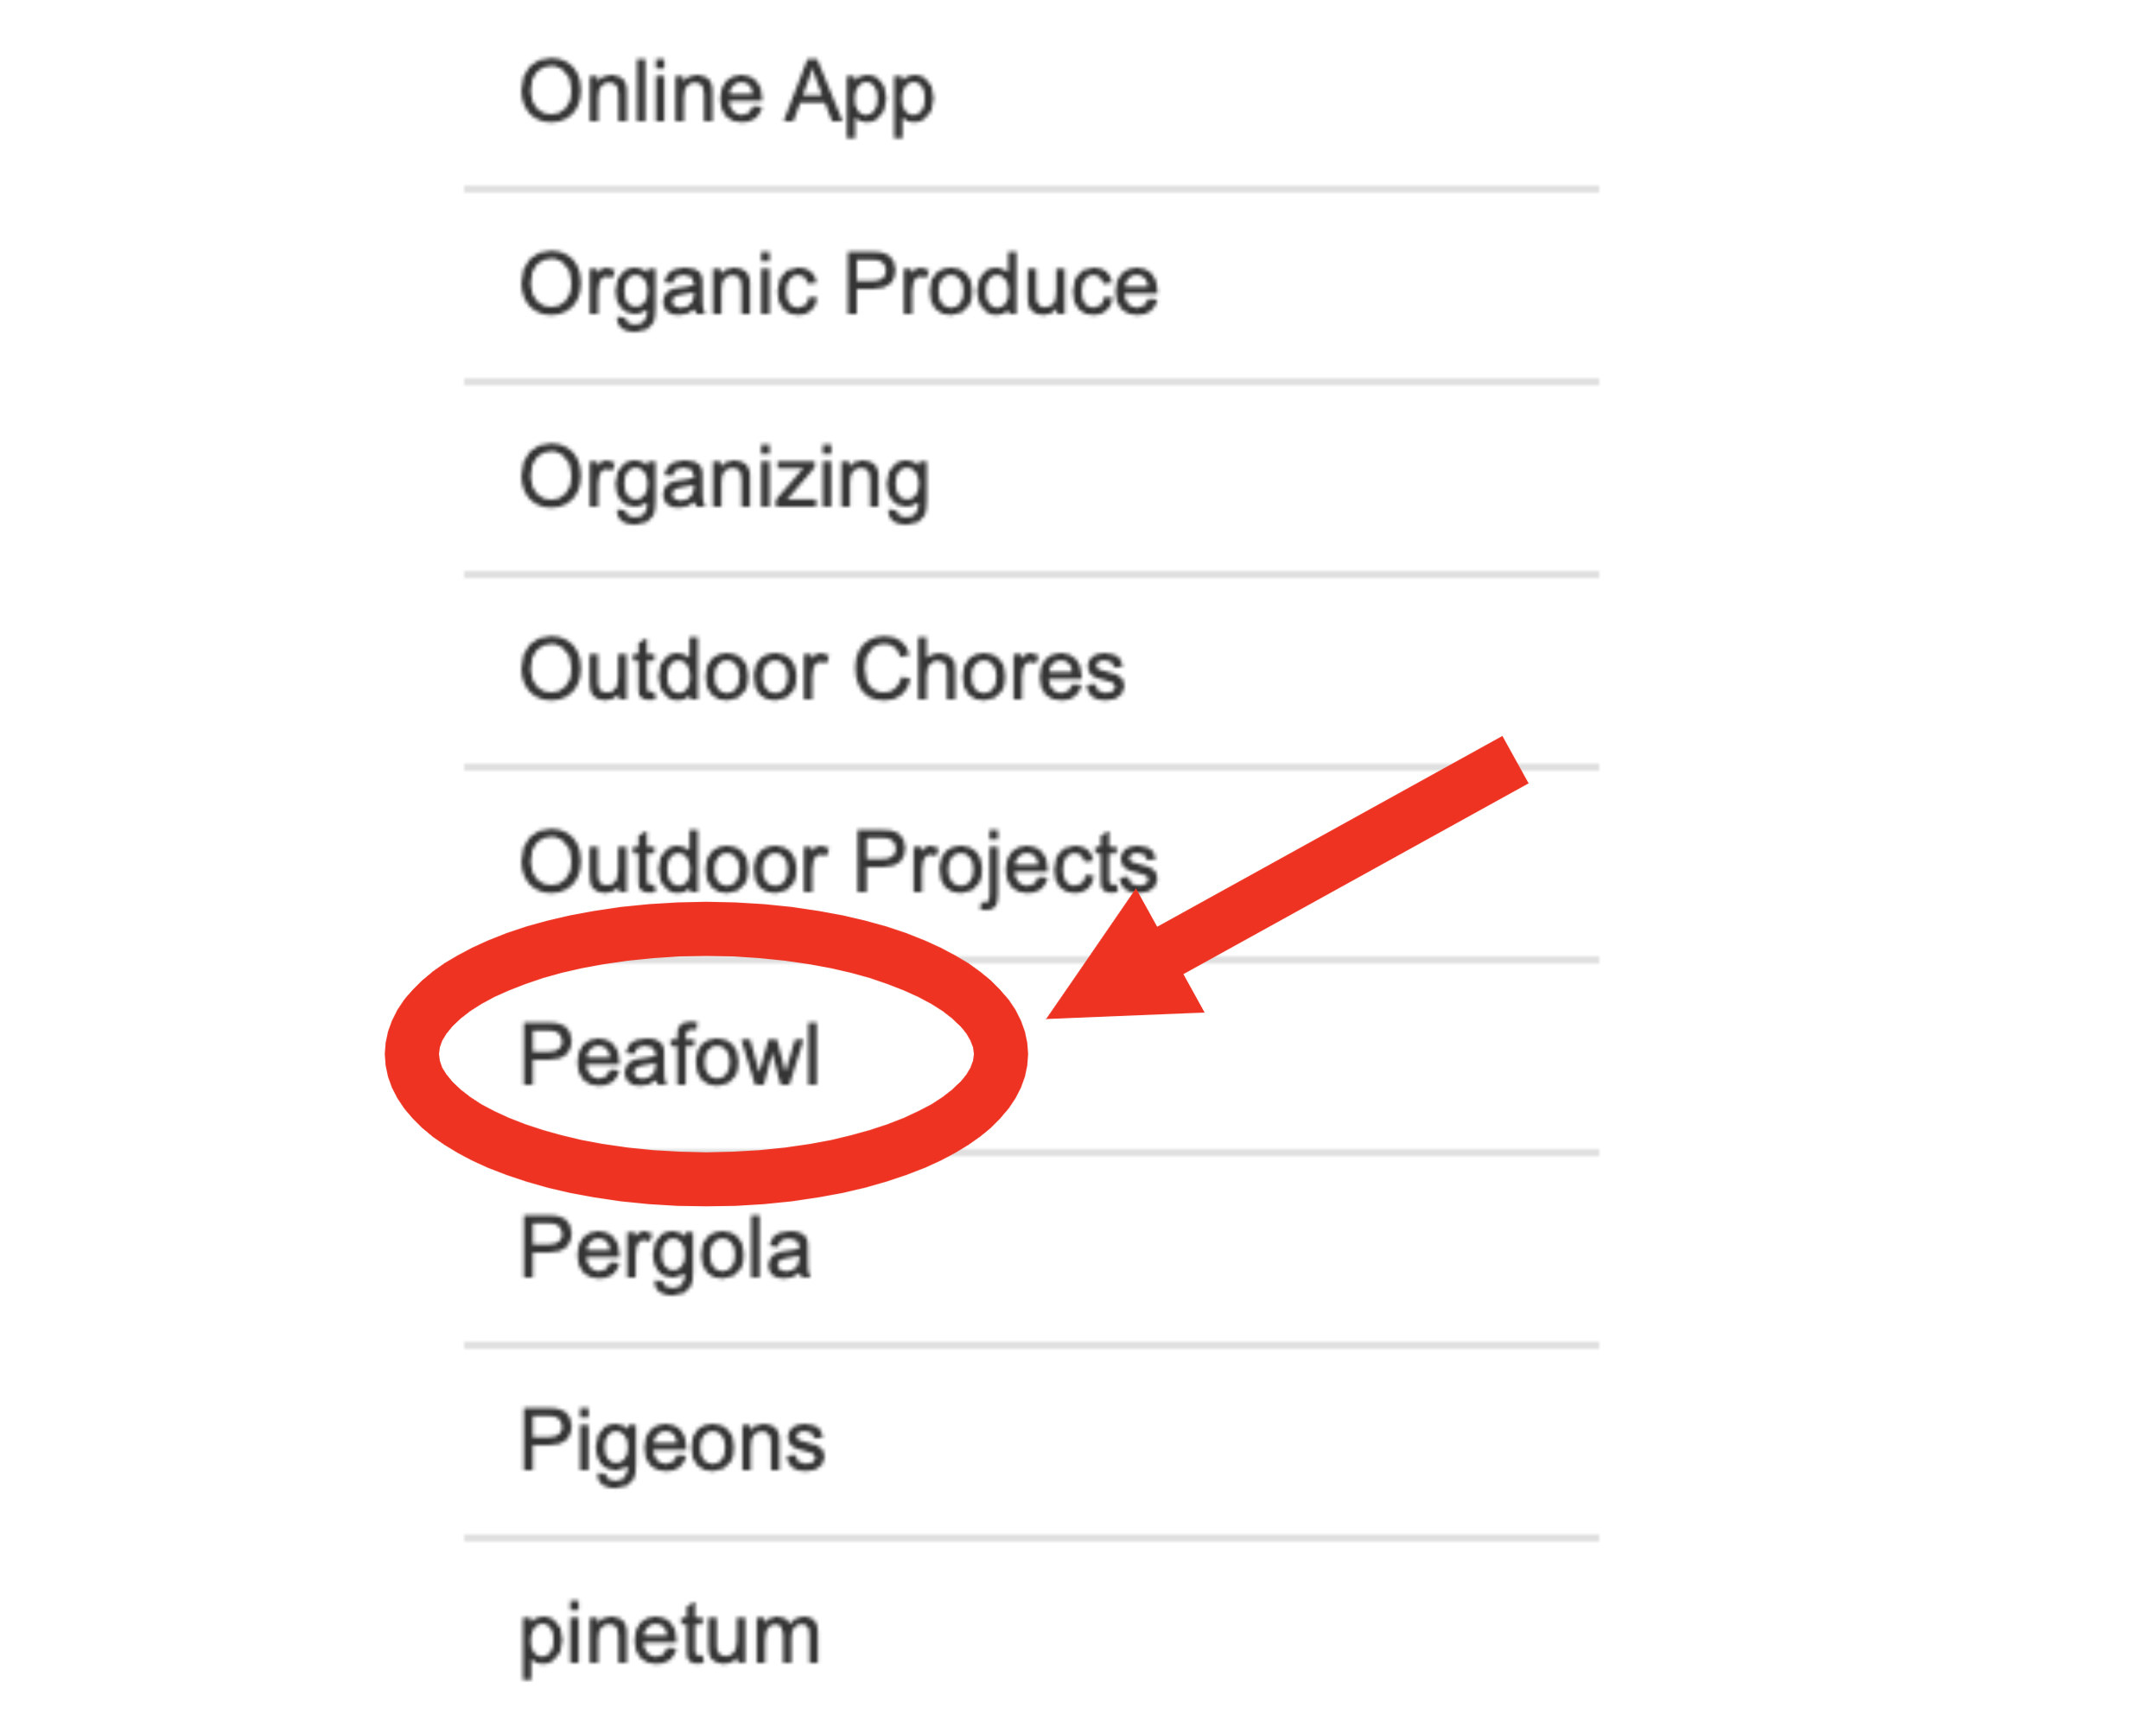 The category 'peafowl' is circled on her blog